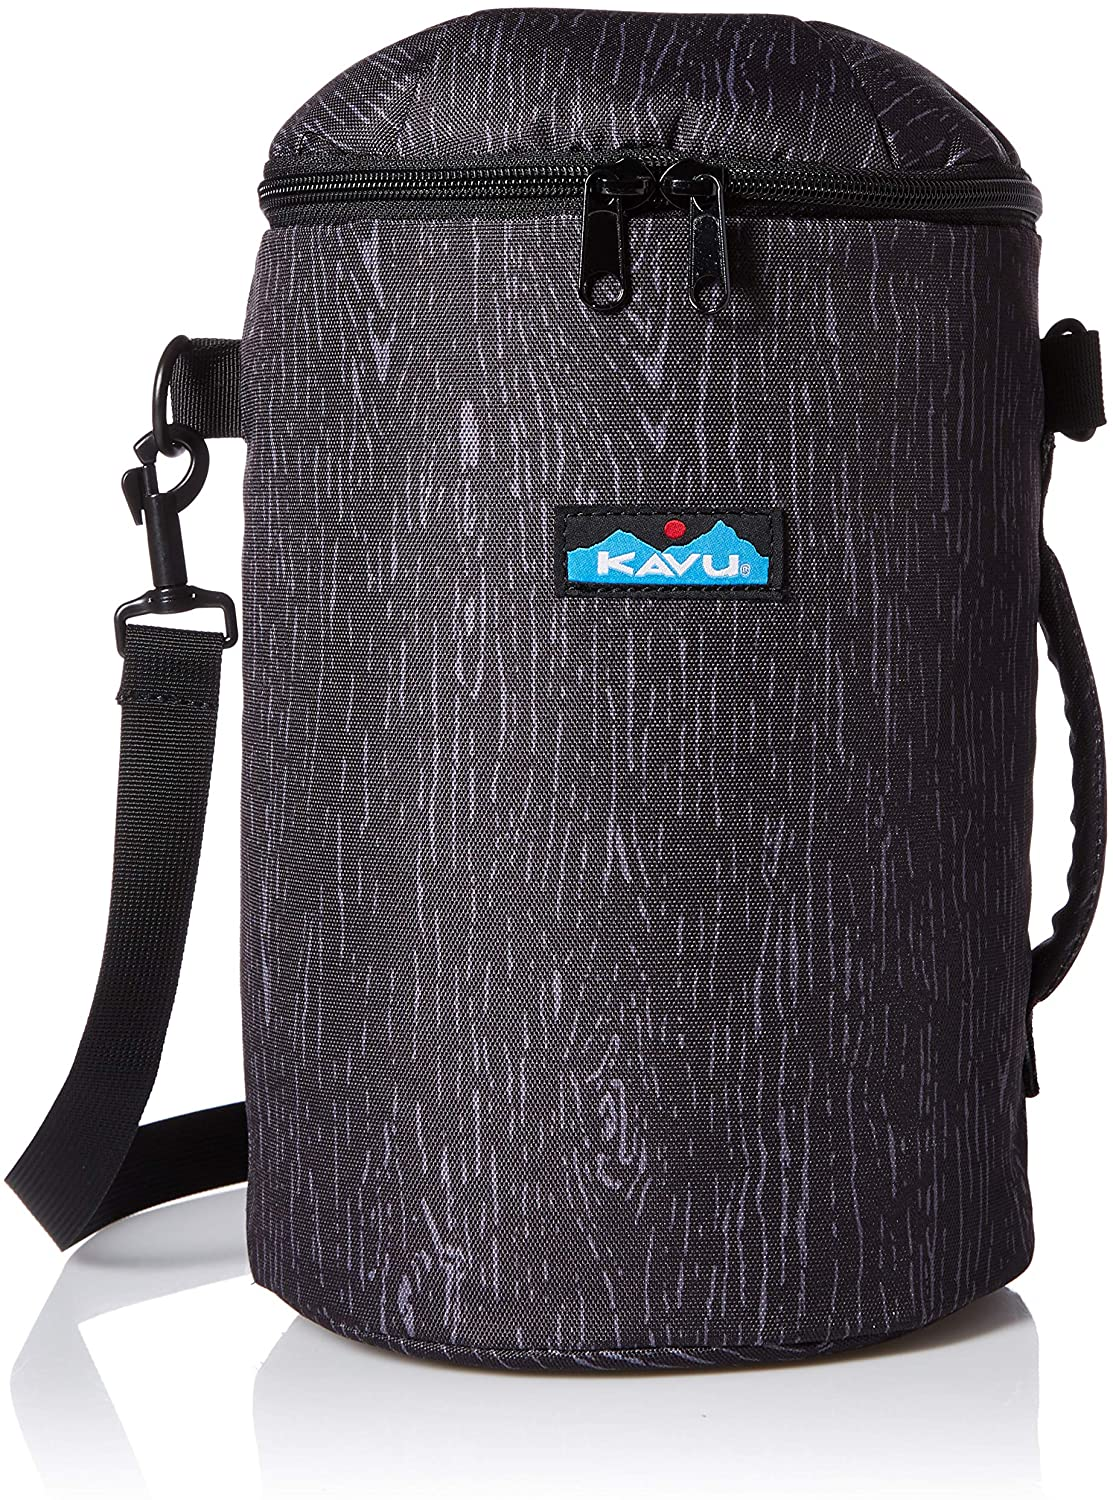 KAVU Bucket Truck It Insulated Cooler Bag For Travel, Picnic, Beach, Camping, and Lunch